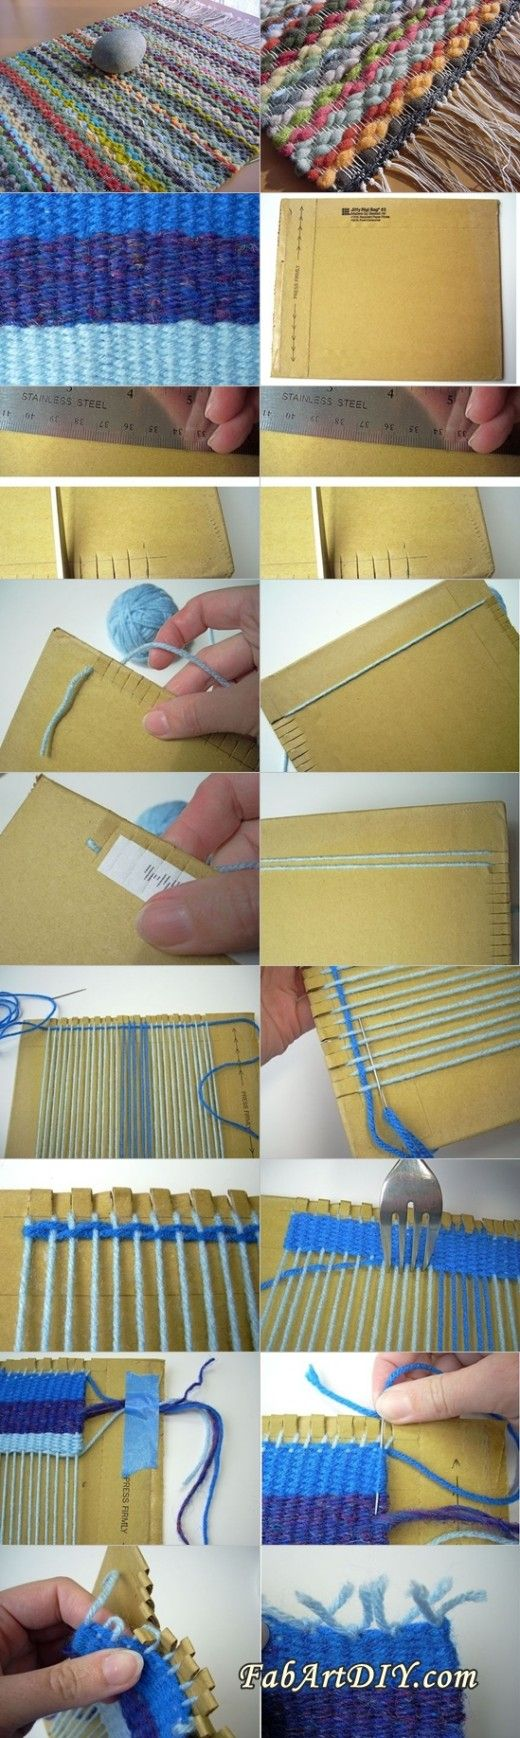 DIY Woven Rug with Cardboard and Fork